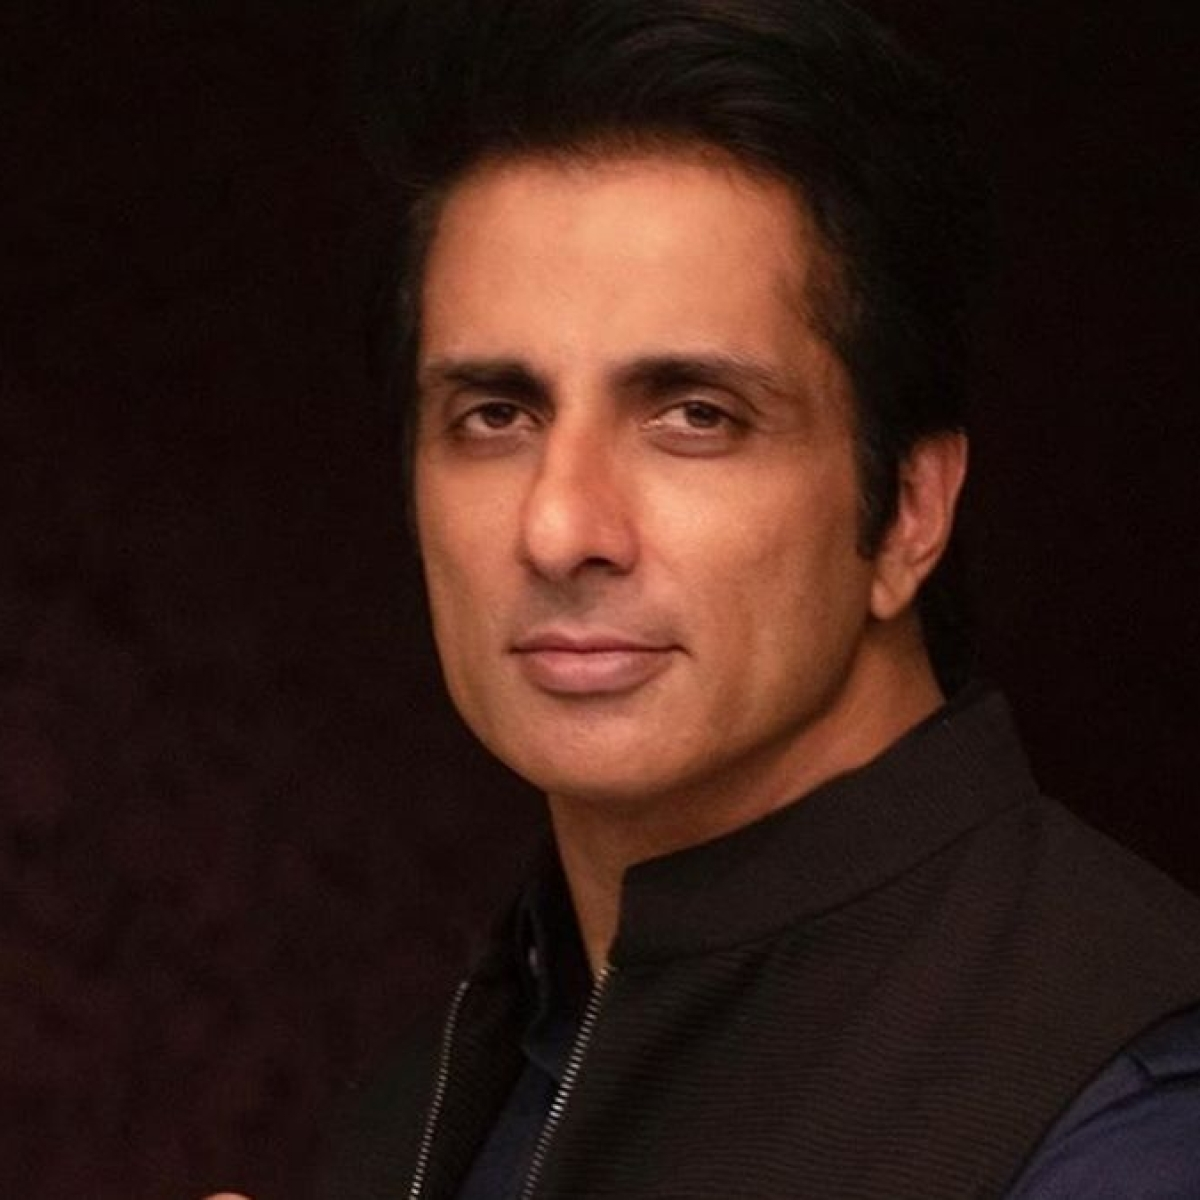 Sonu Sood to set up oxygen plants in Kurnool, Nellore hospitals, says 'It's time to support rural India'